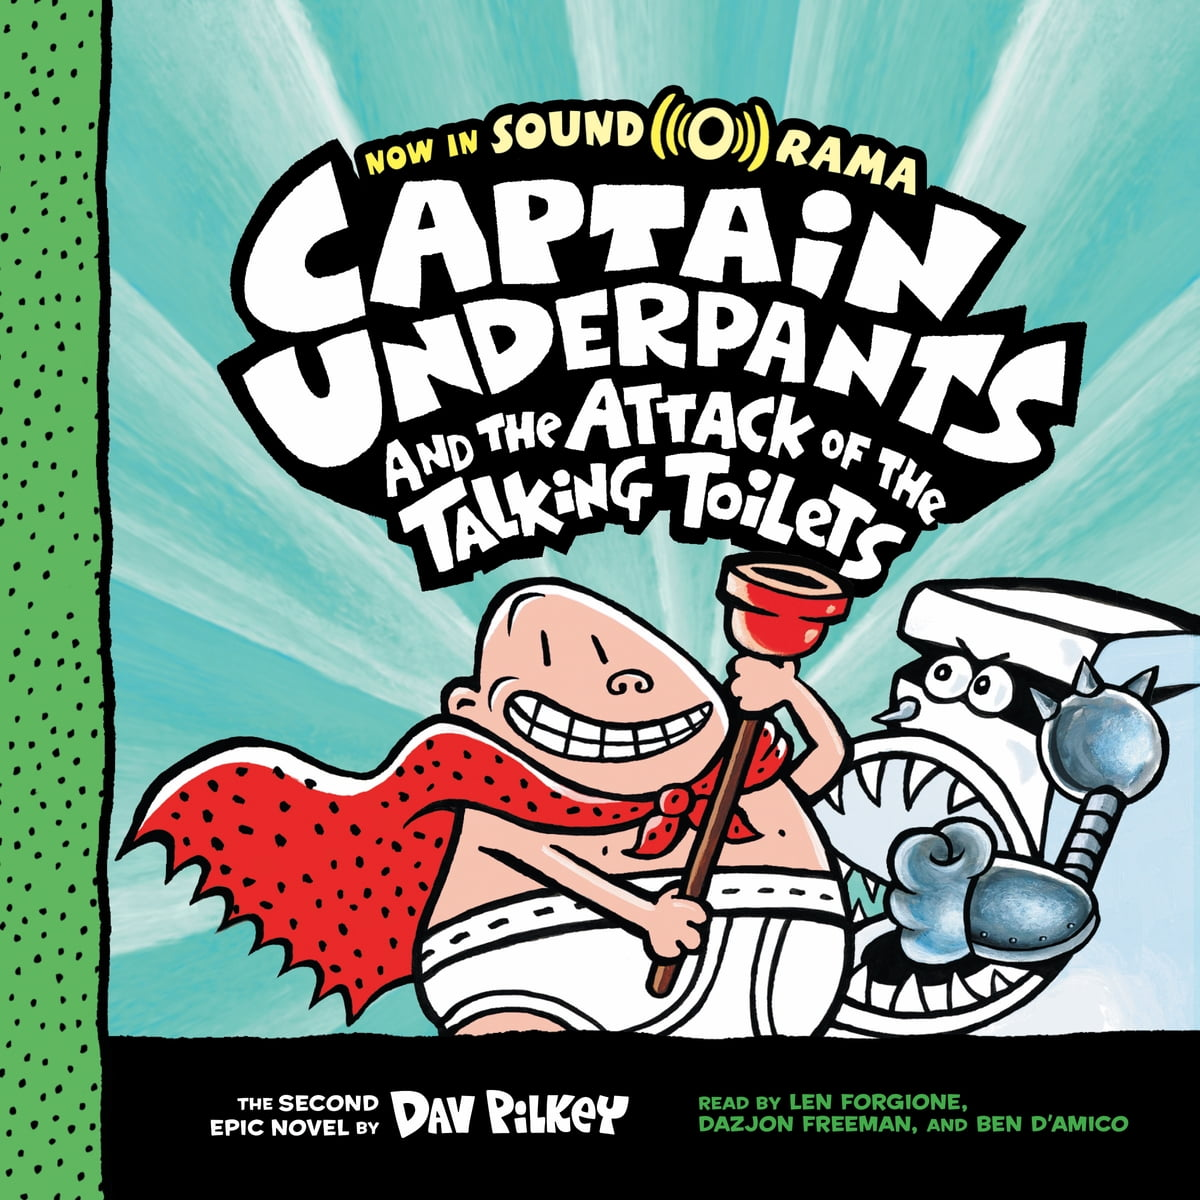 Captain Underpants 2 Captain Underpants And The Attack Of The Talking Toilets Audiobook By Dav Pilkey 9781338282955 Rakuten Kobo